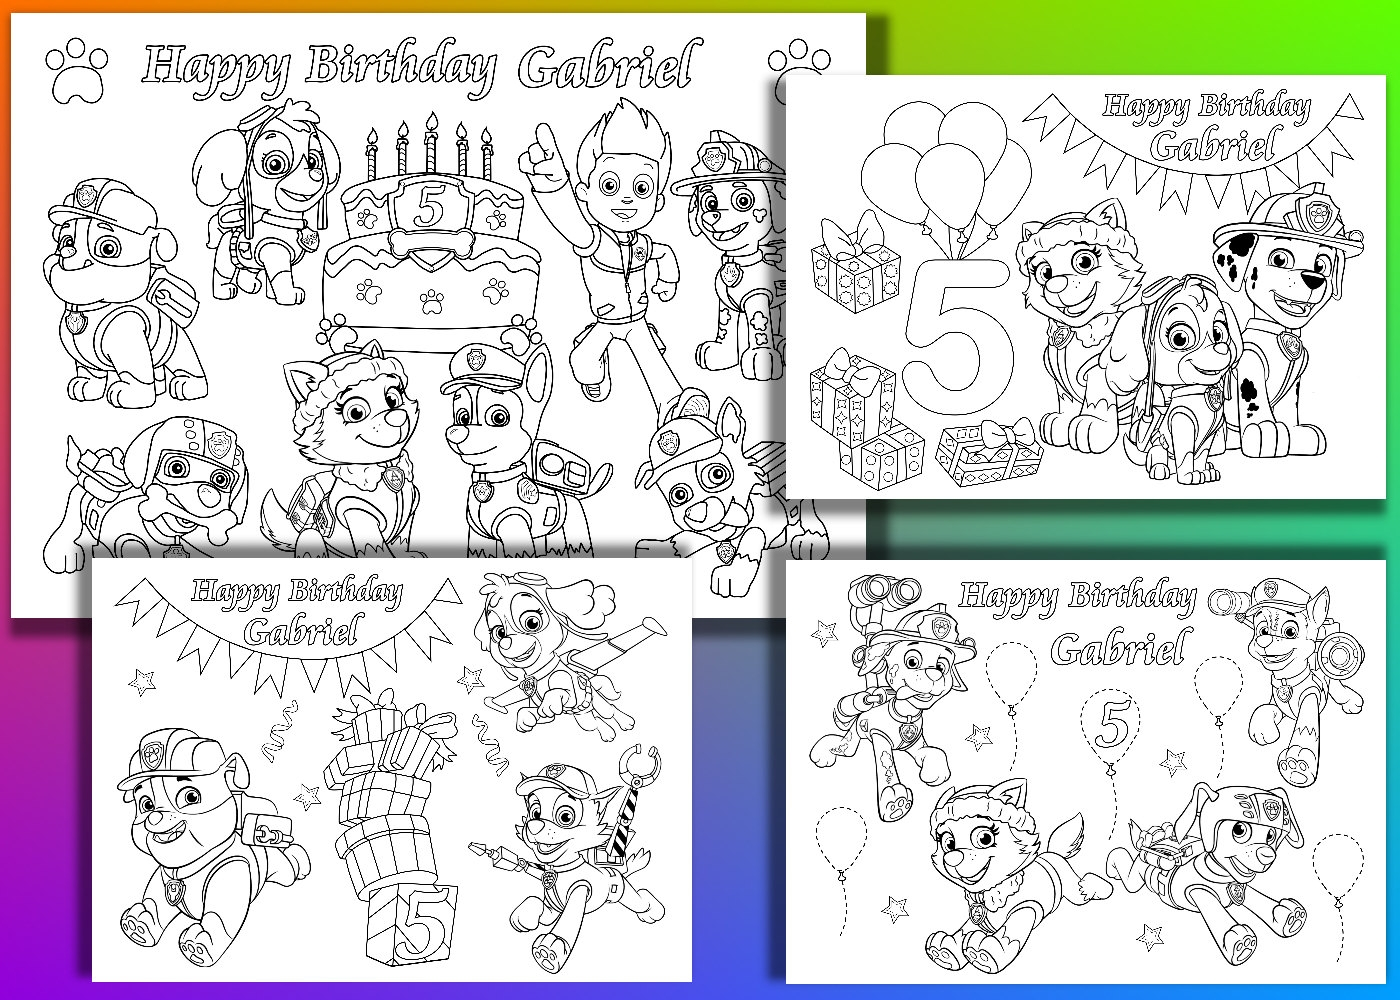 personalized happy birthday coloring pages ; personalized-happy-birthday-coloring-pages-14-g-dc29fc294c28ezoom